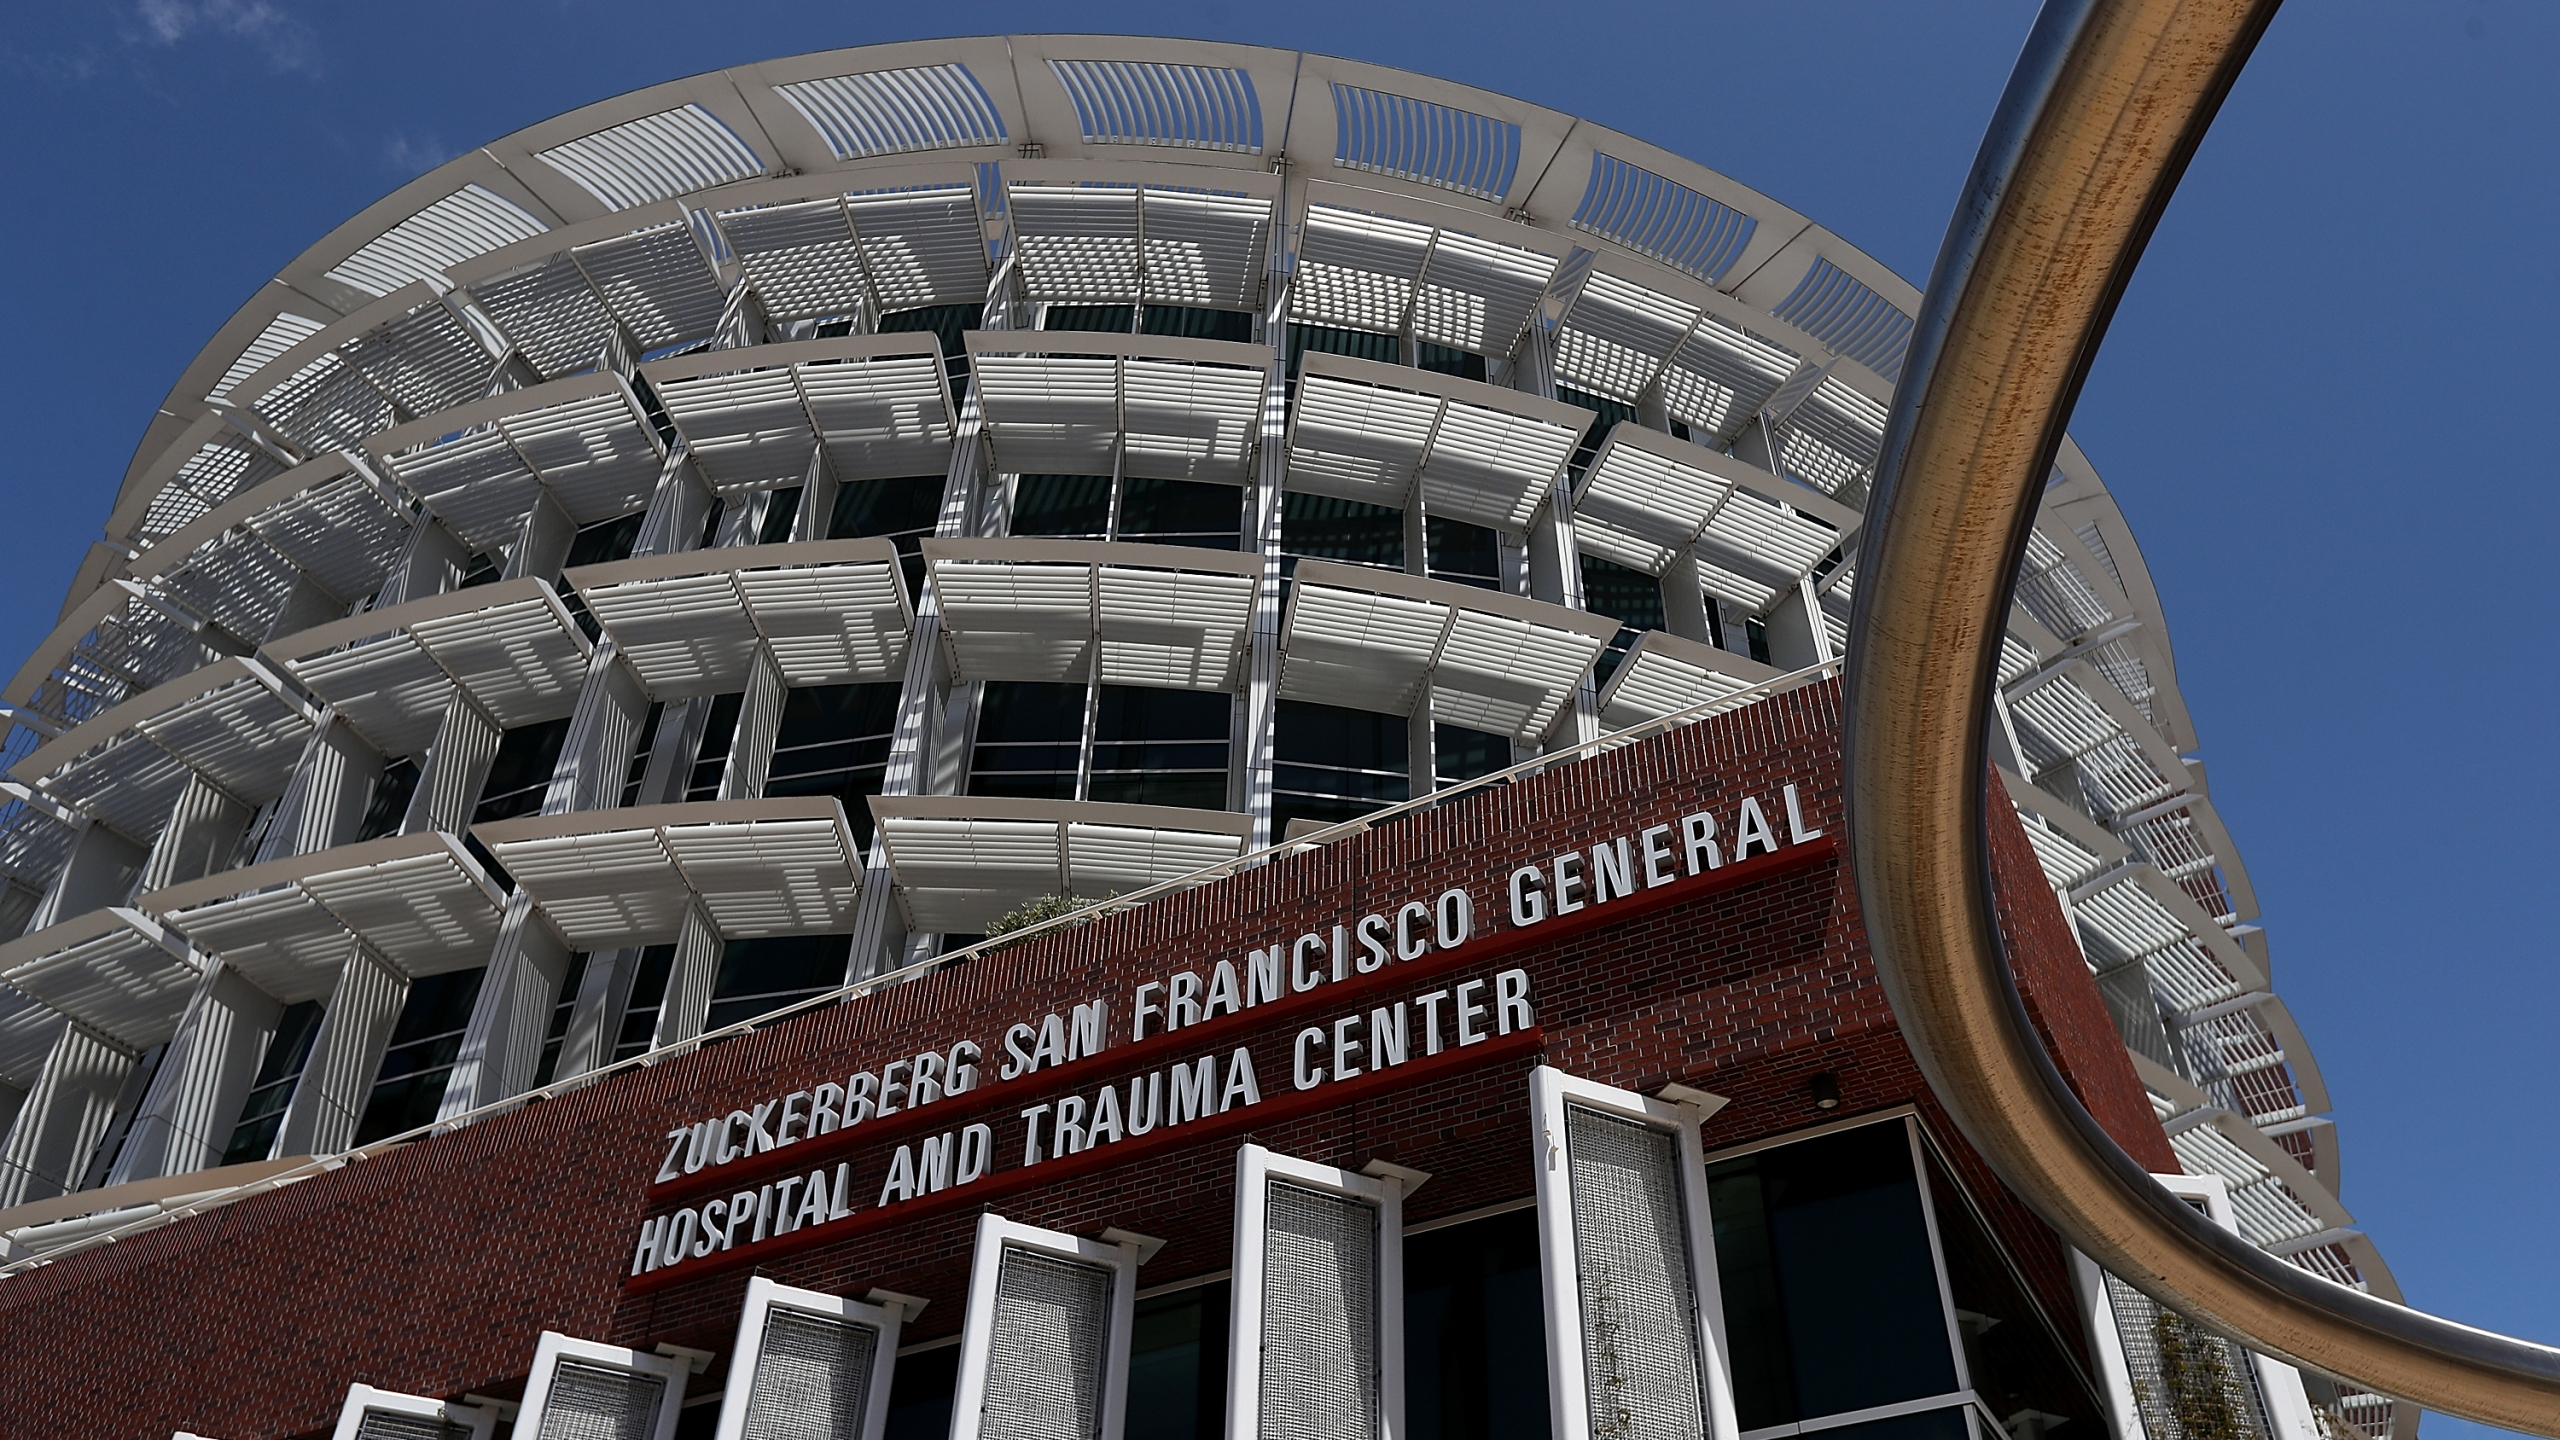 A view of the Zuckerberg San Francisco General Hospital and Trauma Center on May 16, 2018. (Credit: Justin Sullivan / Getty Images)